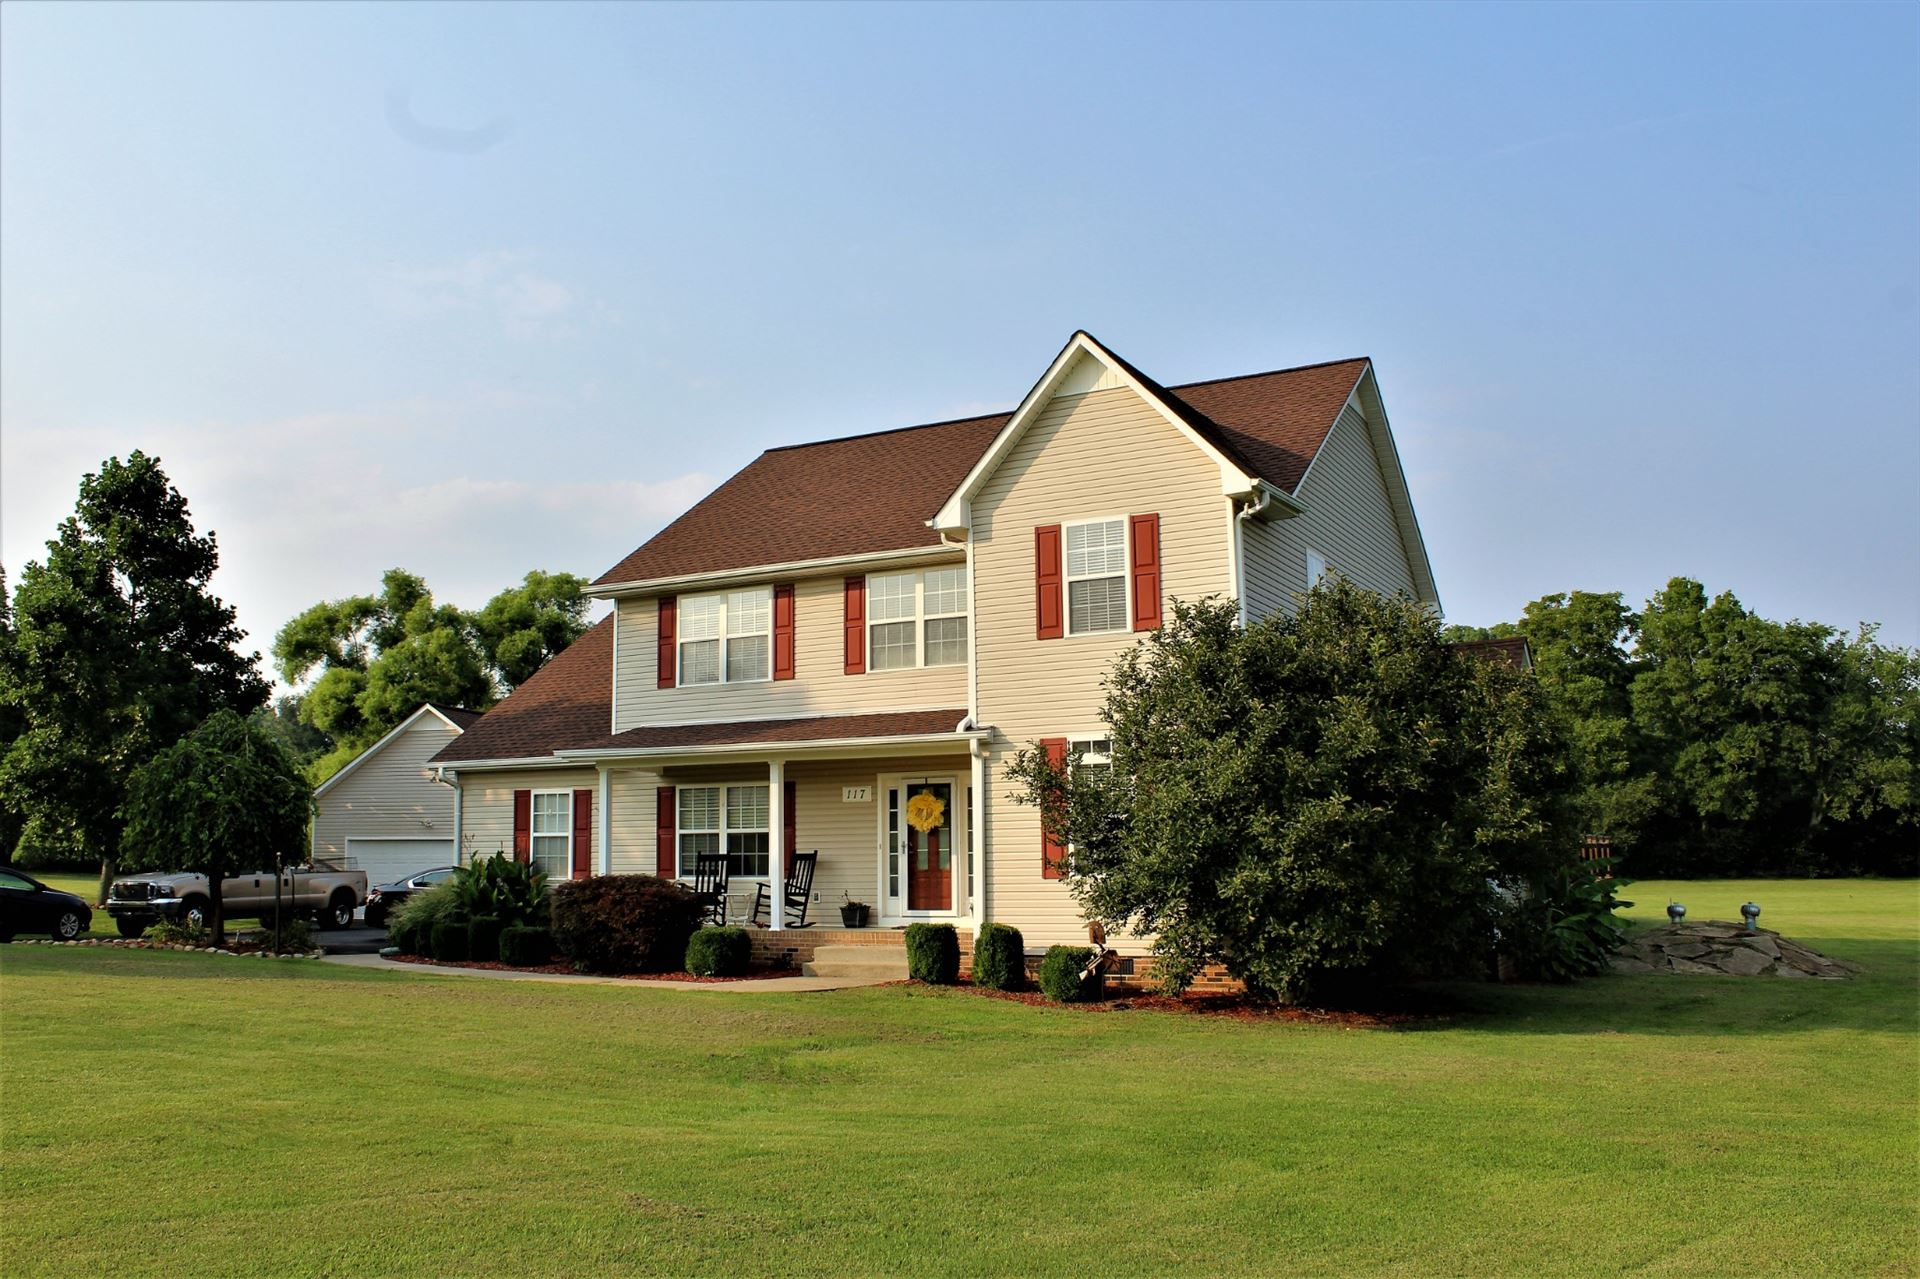 Photo of 117 Carr Dr, Spring Hill, TN 37174 (MLS # 2275538)